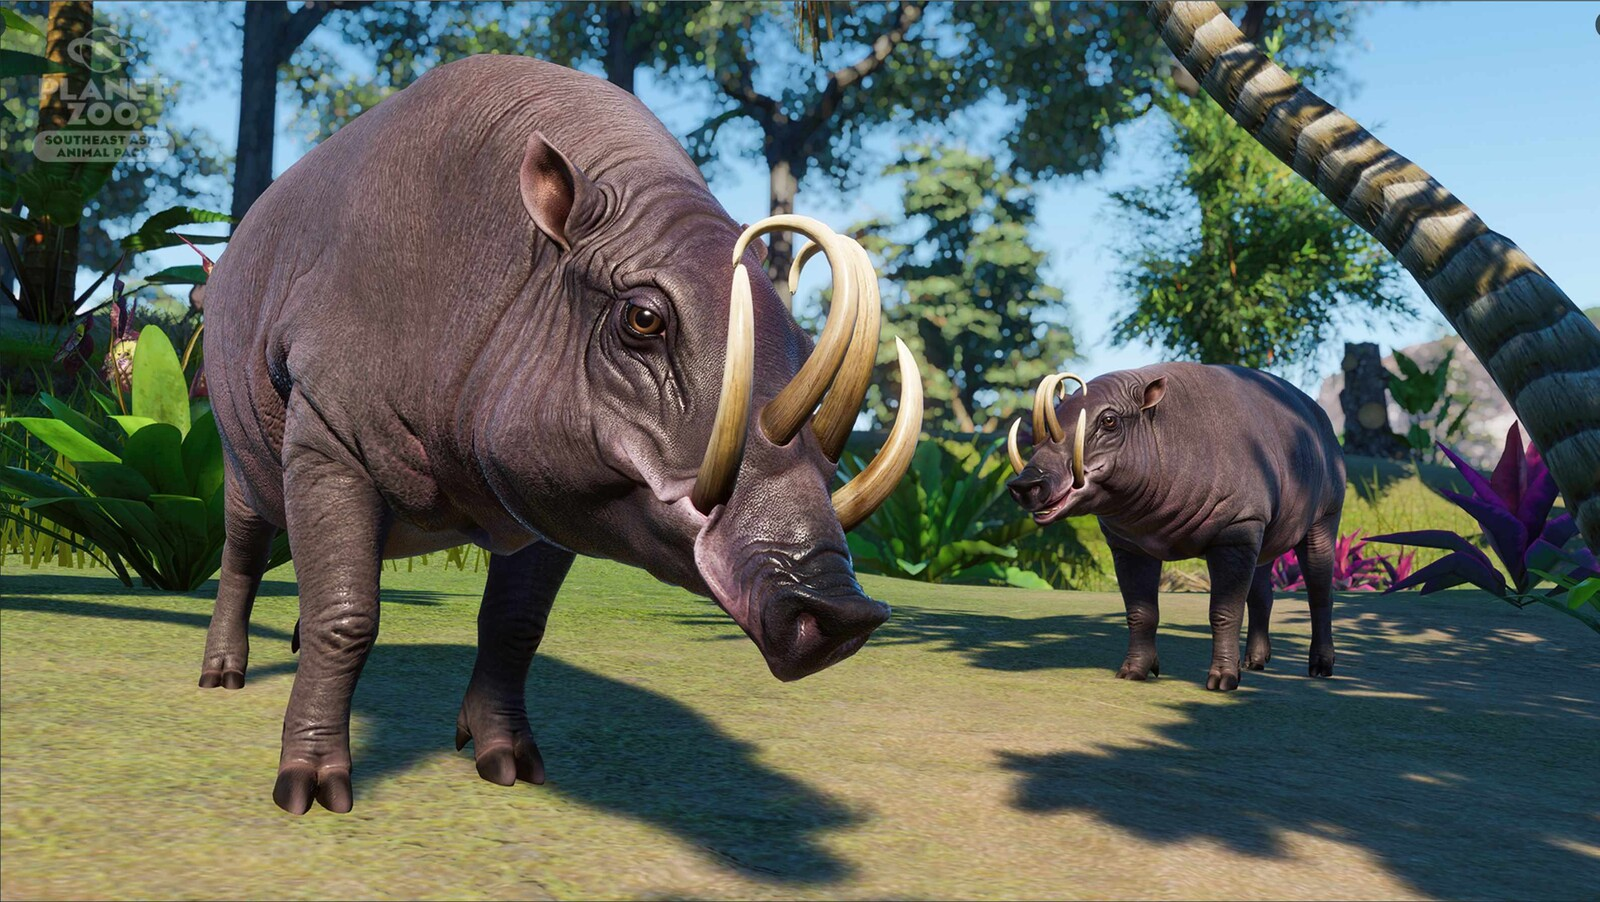 Planet Zoo Southeast Asia Pack - Babirusa